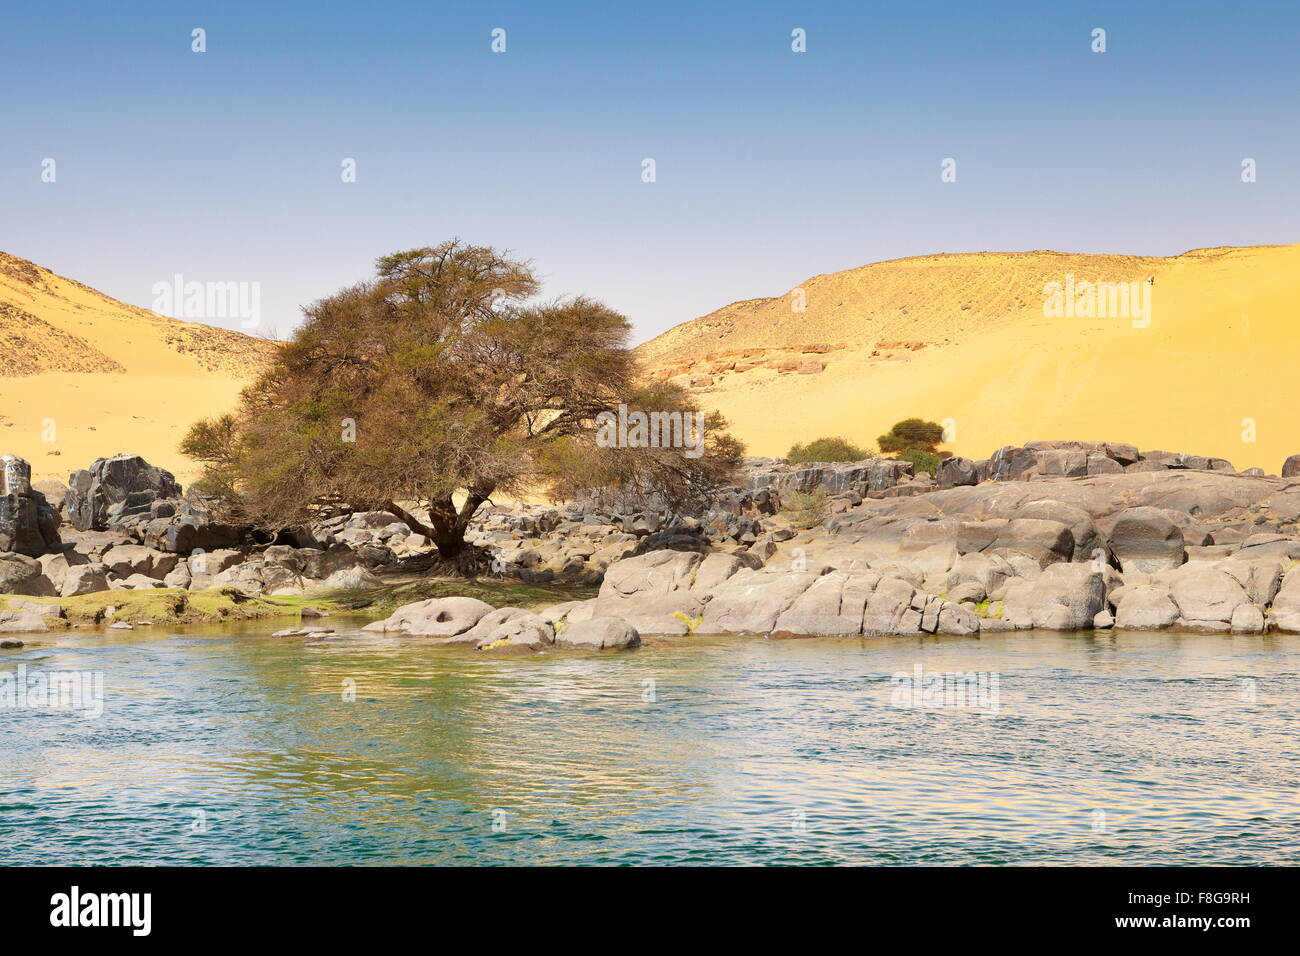 Vegetation Nile River Stock Photos Amp Vegetation Nile River Stock Images